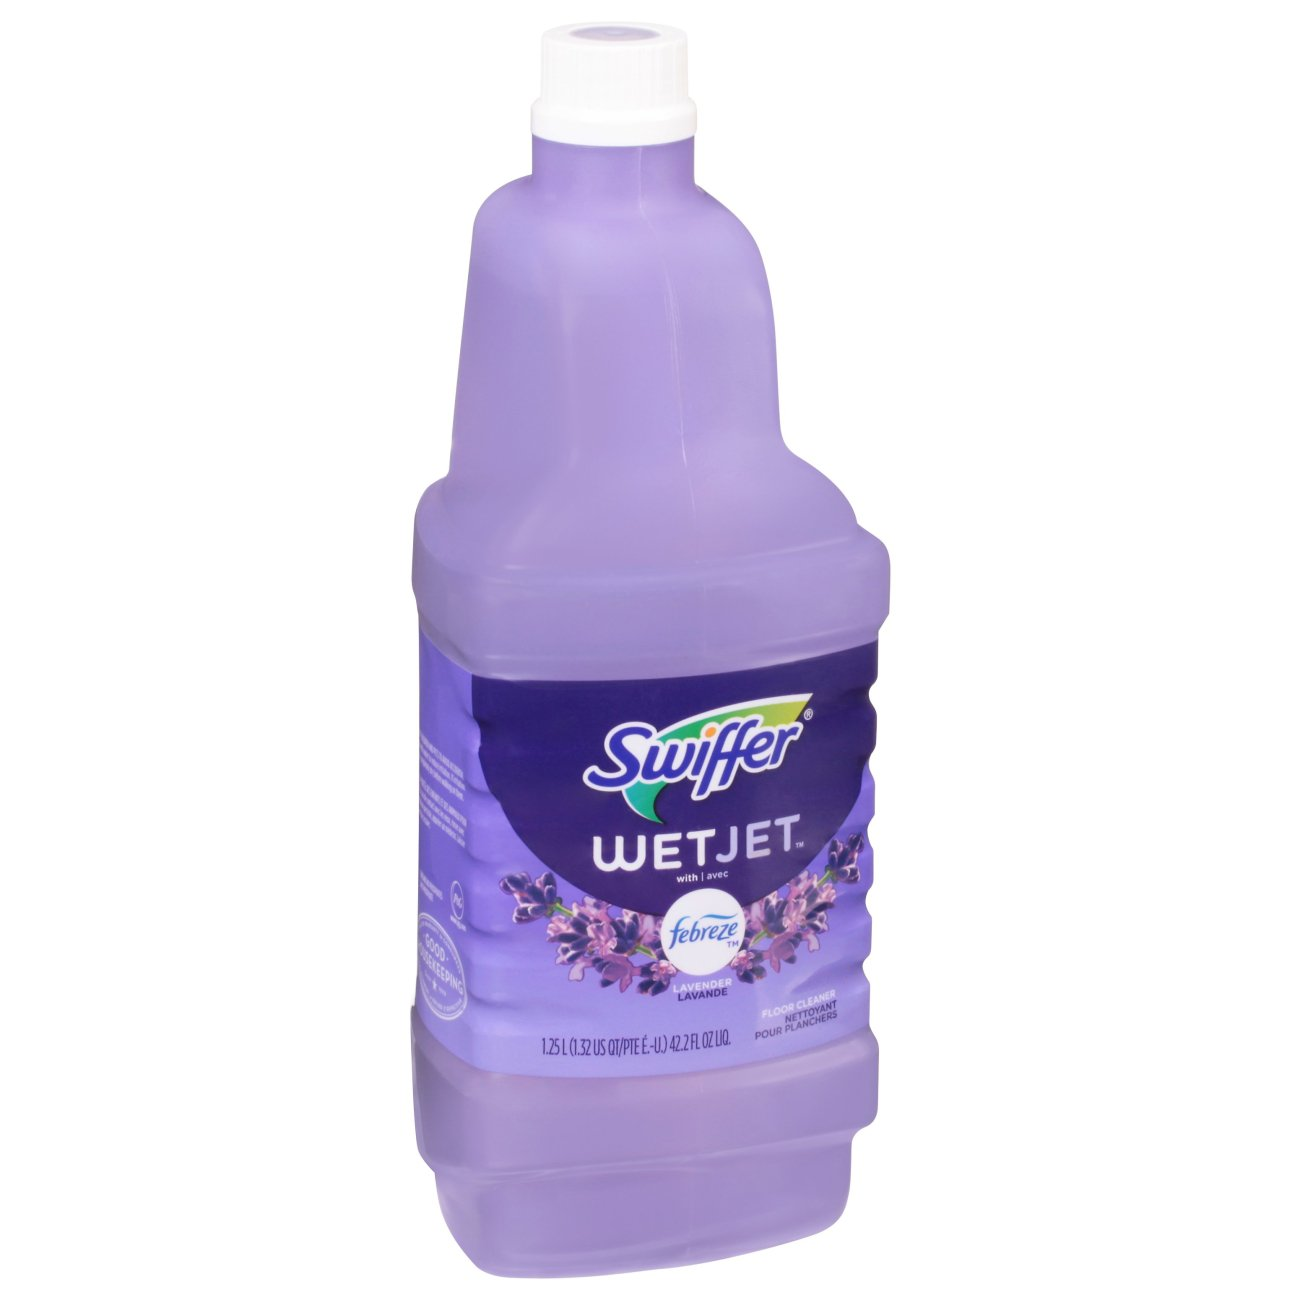 Swiffer<sup>&reg;</sup> WetJet<sup>&reg;</sup> Multi-Purpose Cleaner Solution Refill - Febreze<sup>&reg;</sup> Lavender & Vanilla Comfort<sup>&trade;</sup> Scent